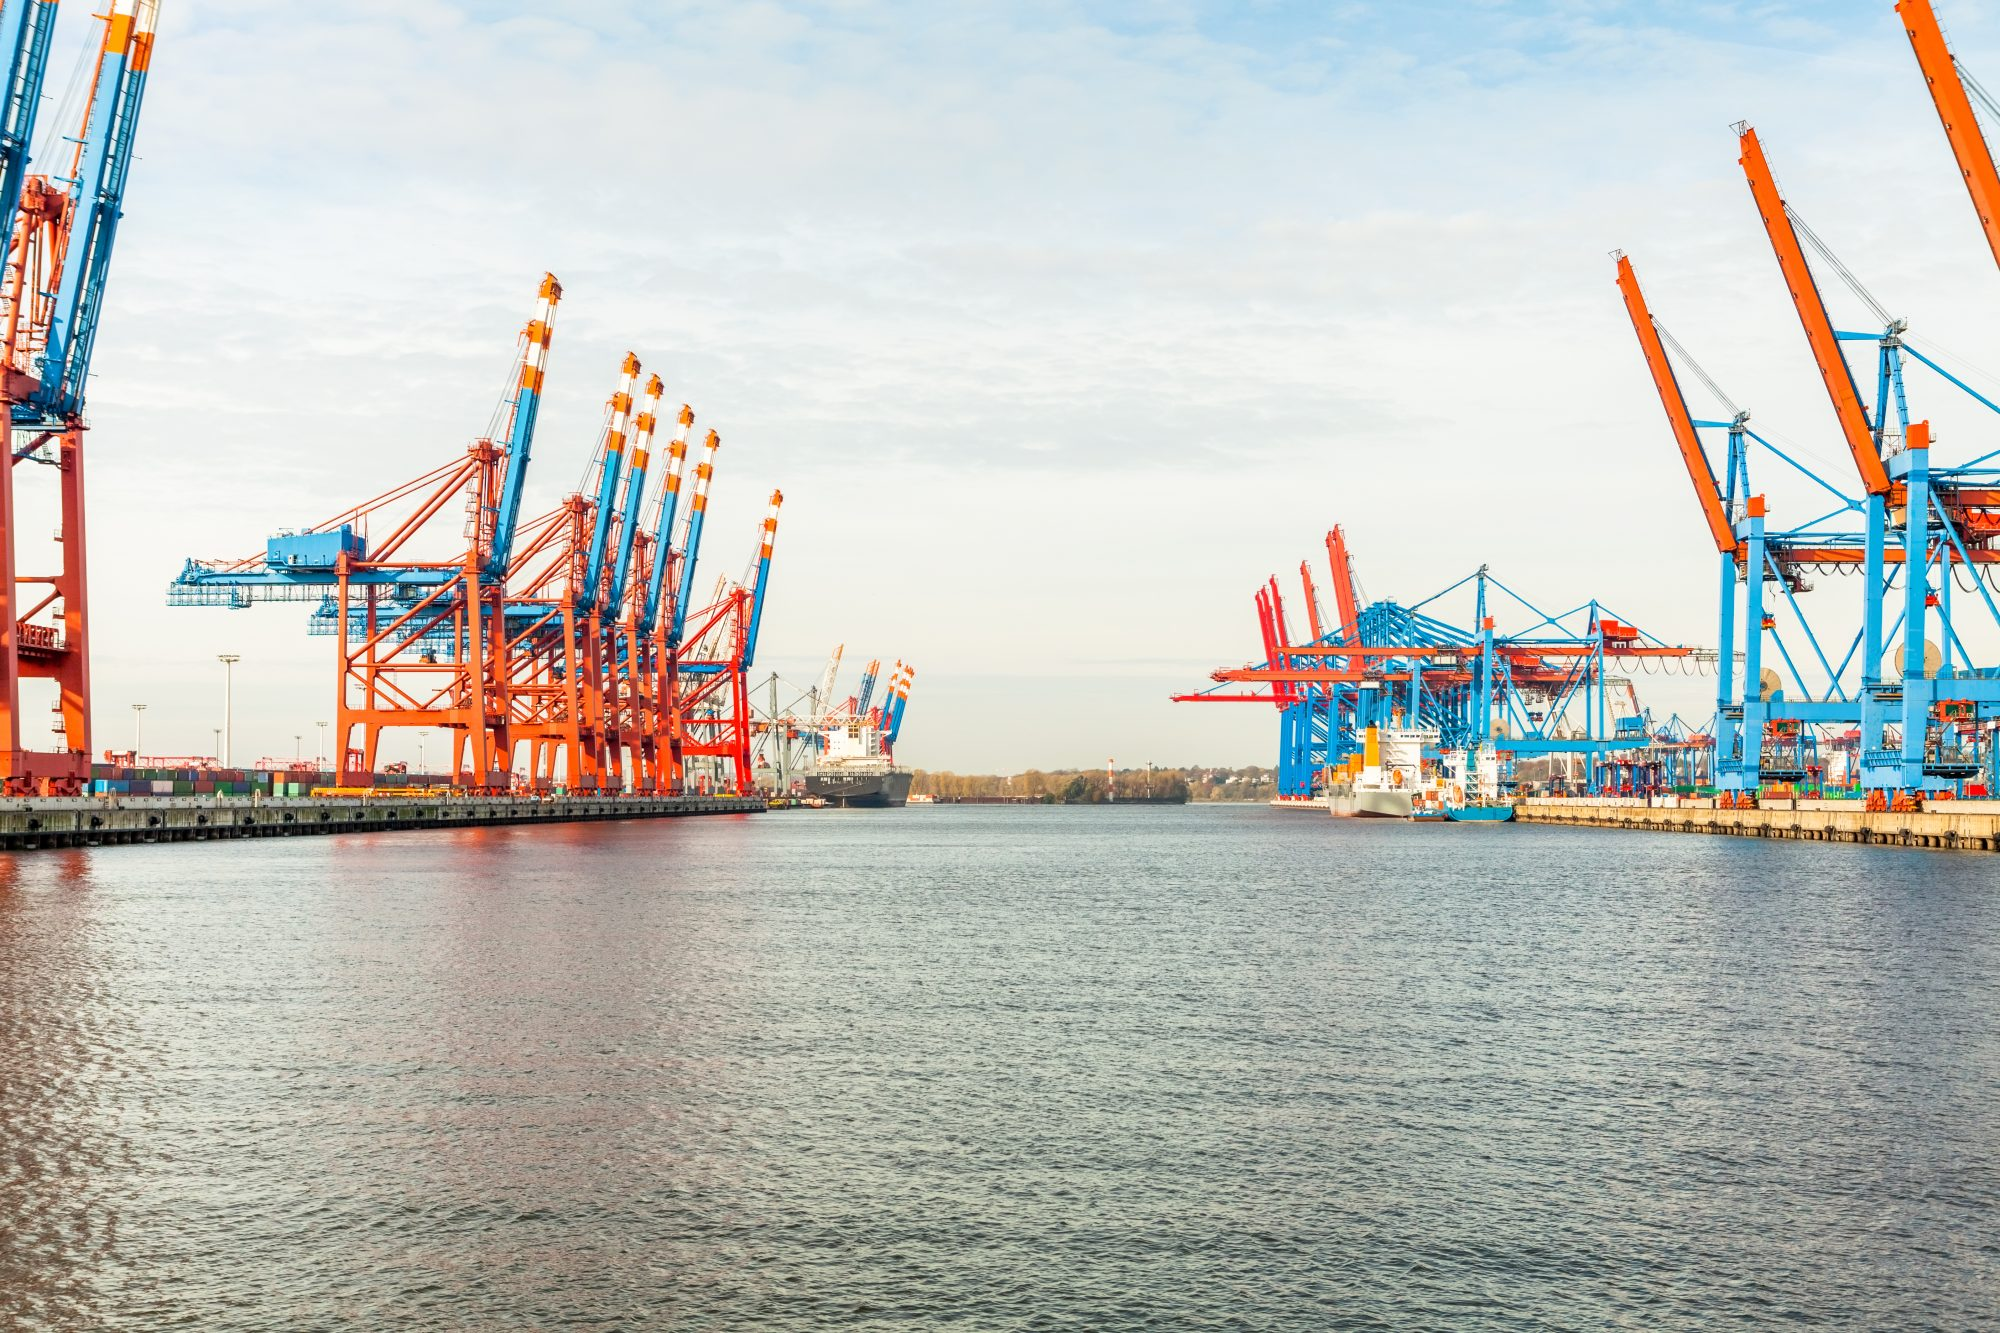 Cargo and Crane Accidents in the Maritime Industry